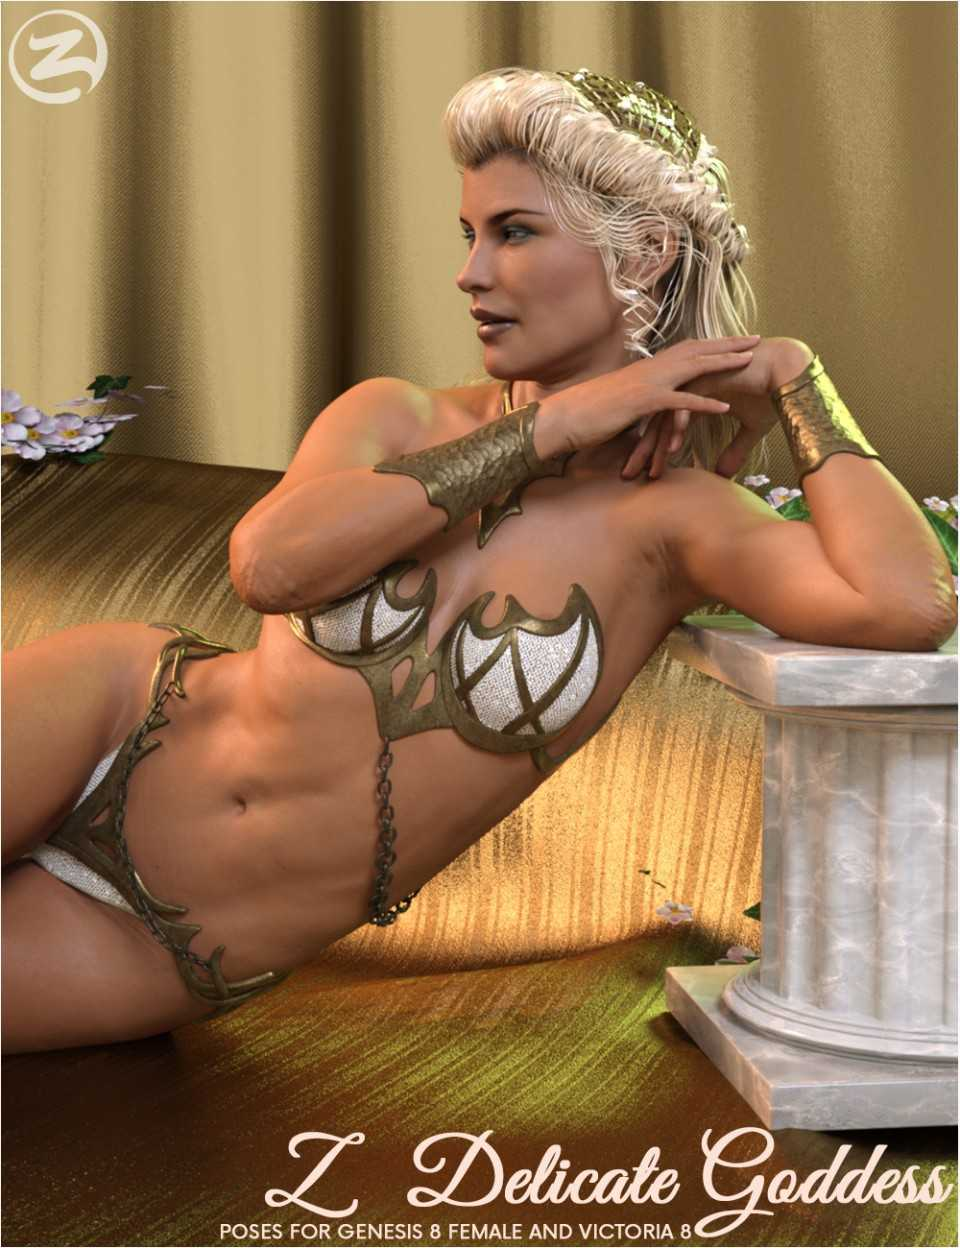 Z Delicate Goddess – Poses for Genesis 8 Female and Olympia 8